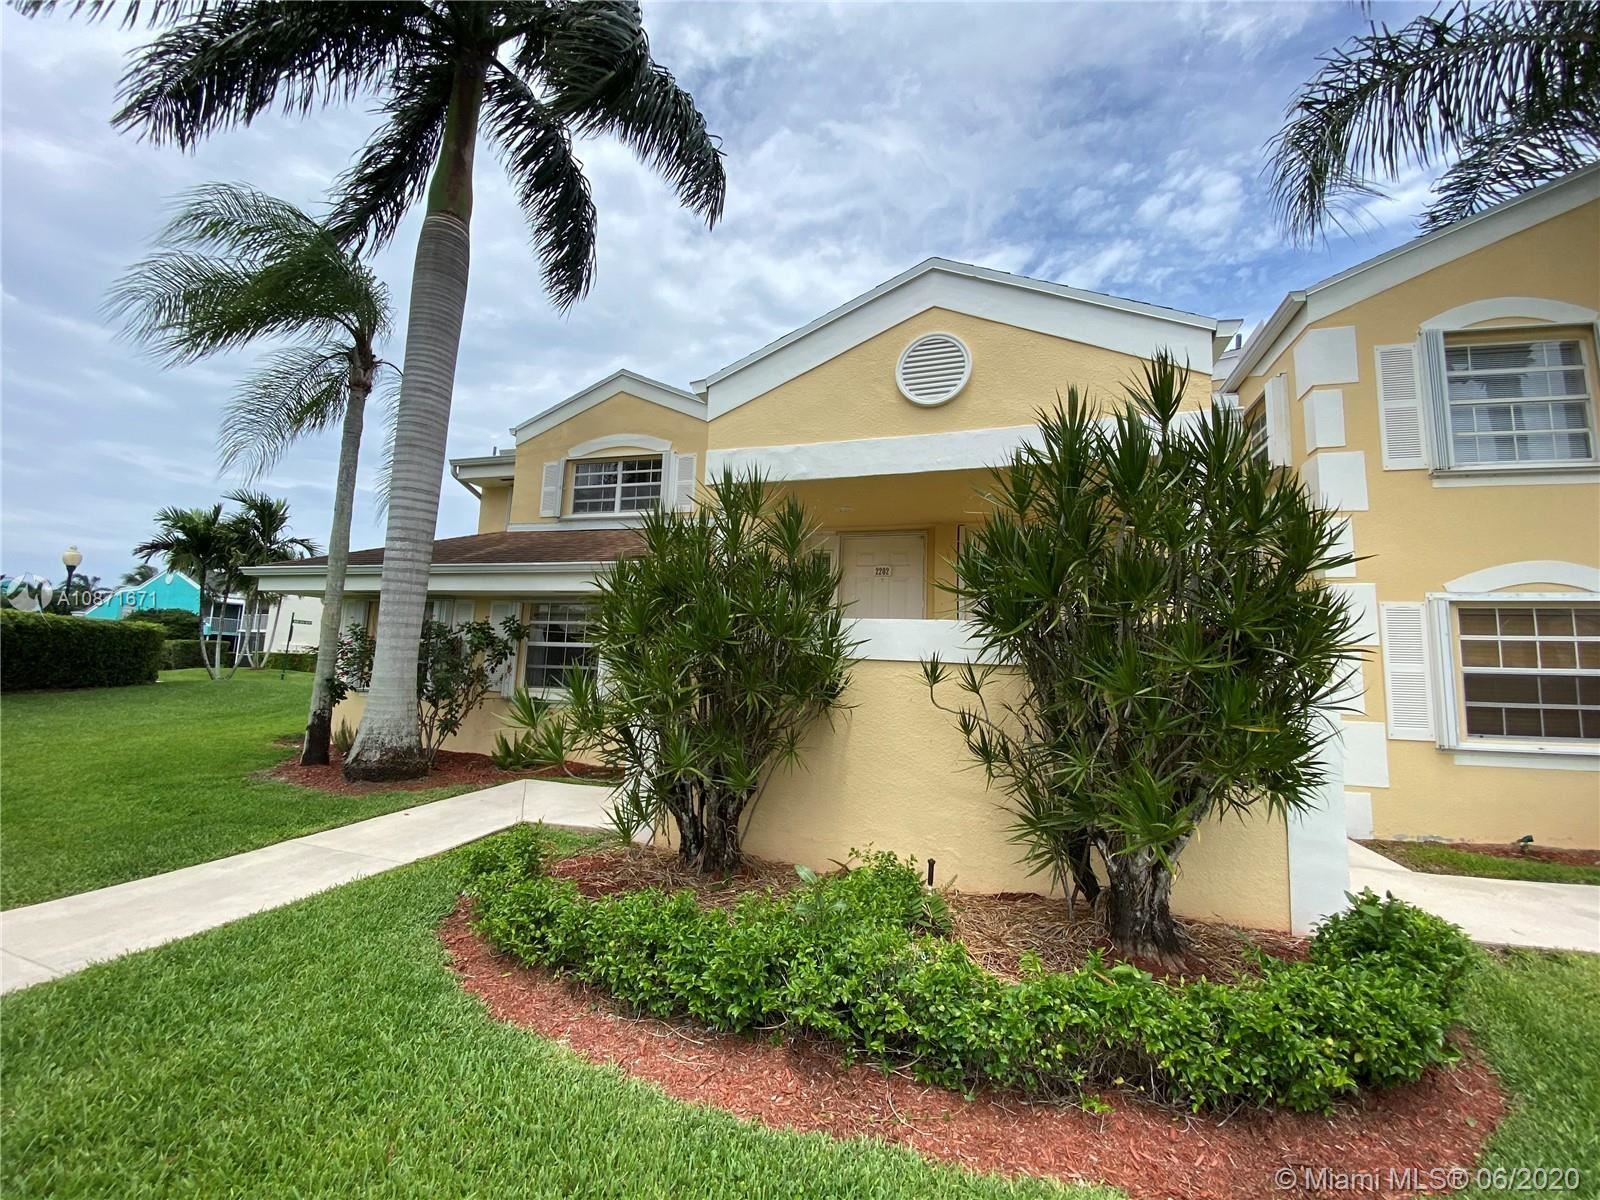 2202 SE 27th Dr #201-A, Homestead, FL 33035 - #: A10871671